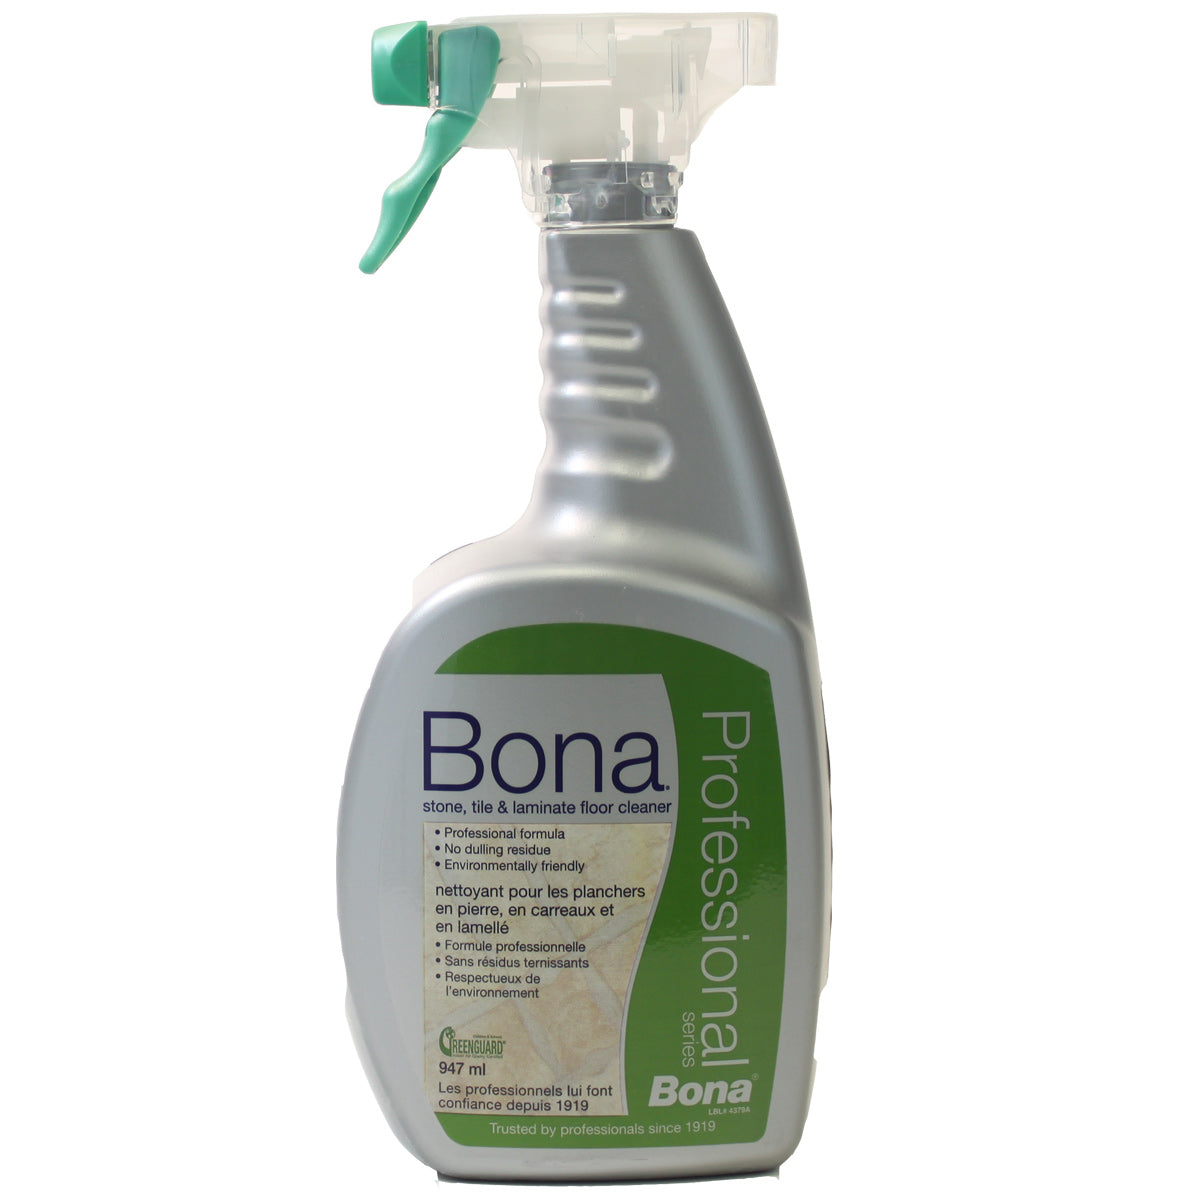 Buy tile laminate and stone cleaners at vacuum plus canada buy bona stone tile and laminate floor cleaner pro series spray 32oz vacuum plus dailygadgetfo Choice Image